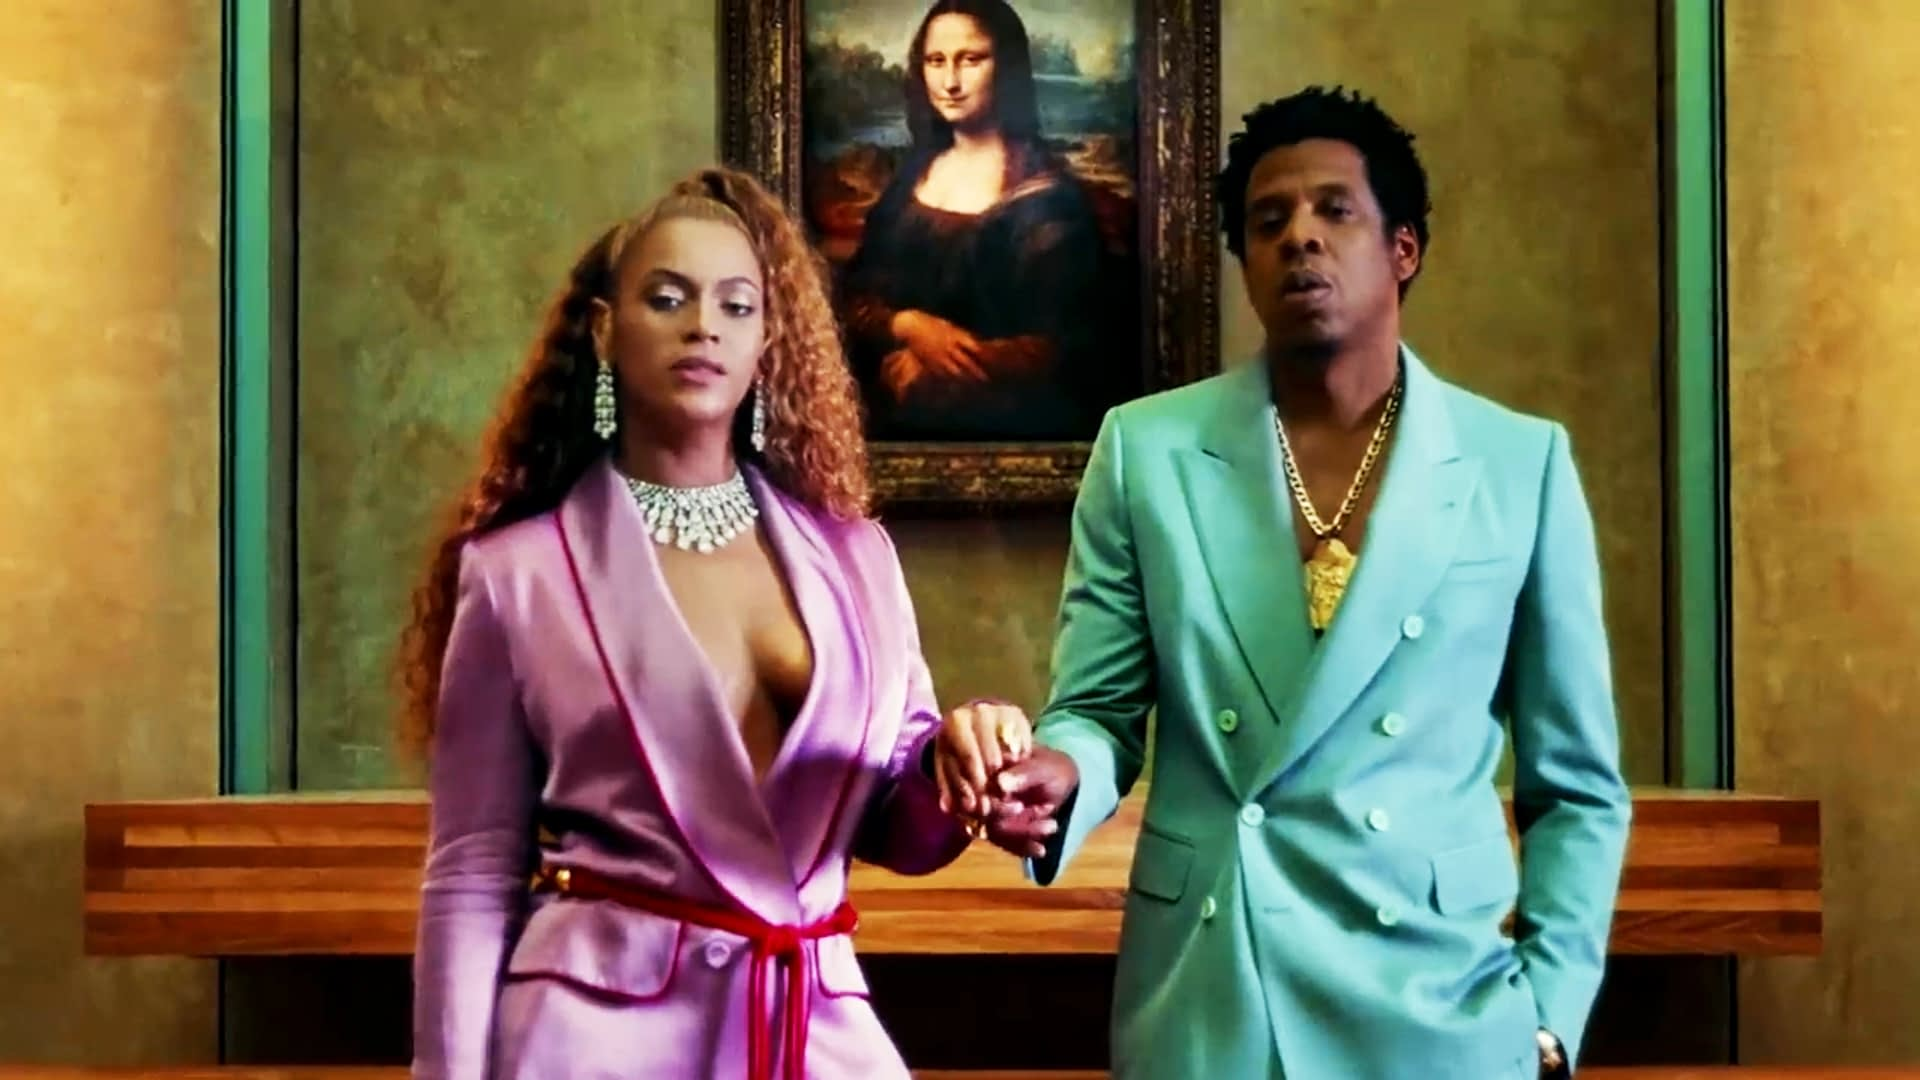 180617034959-beyonce-jay-z-everything-is-love-joint-album-orig-gs-00001820